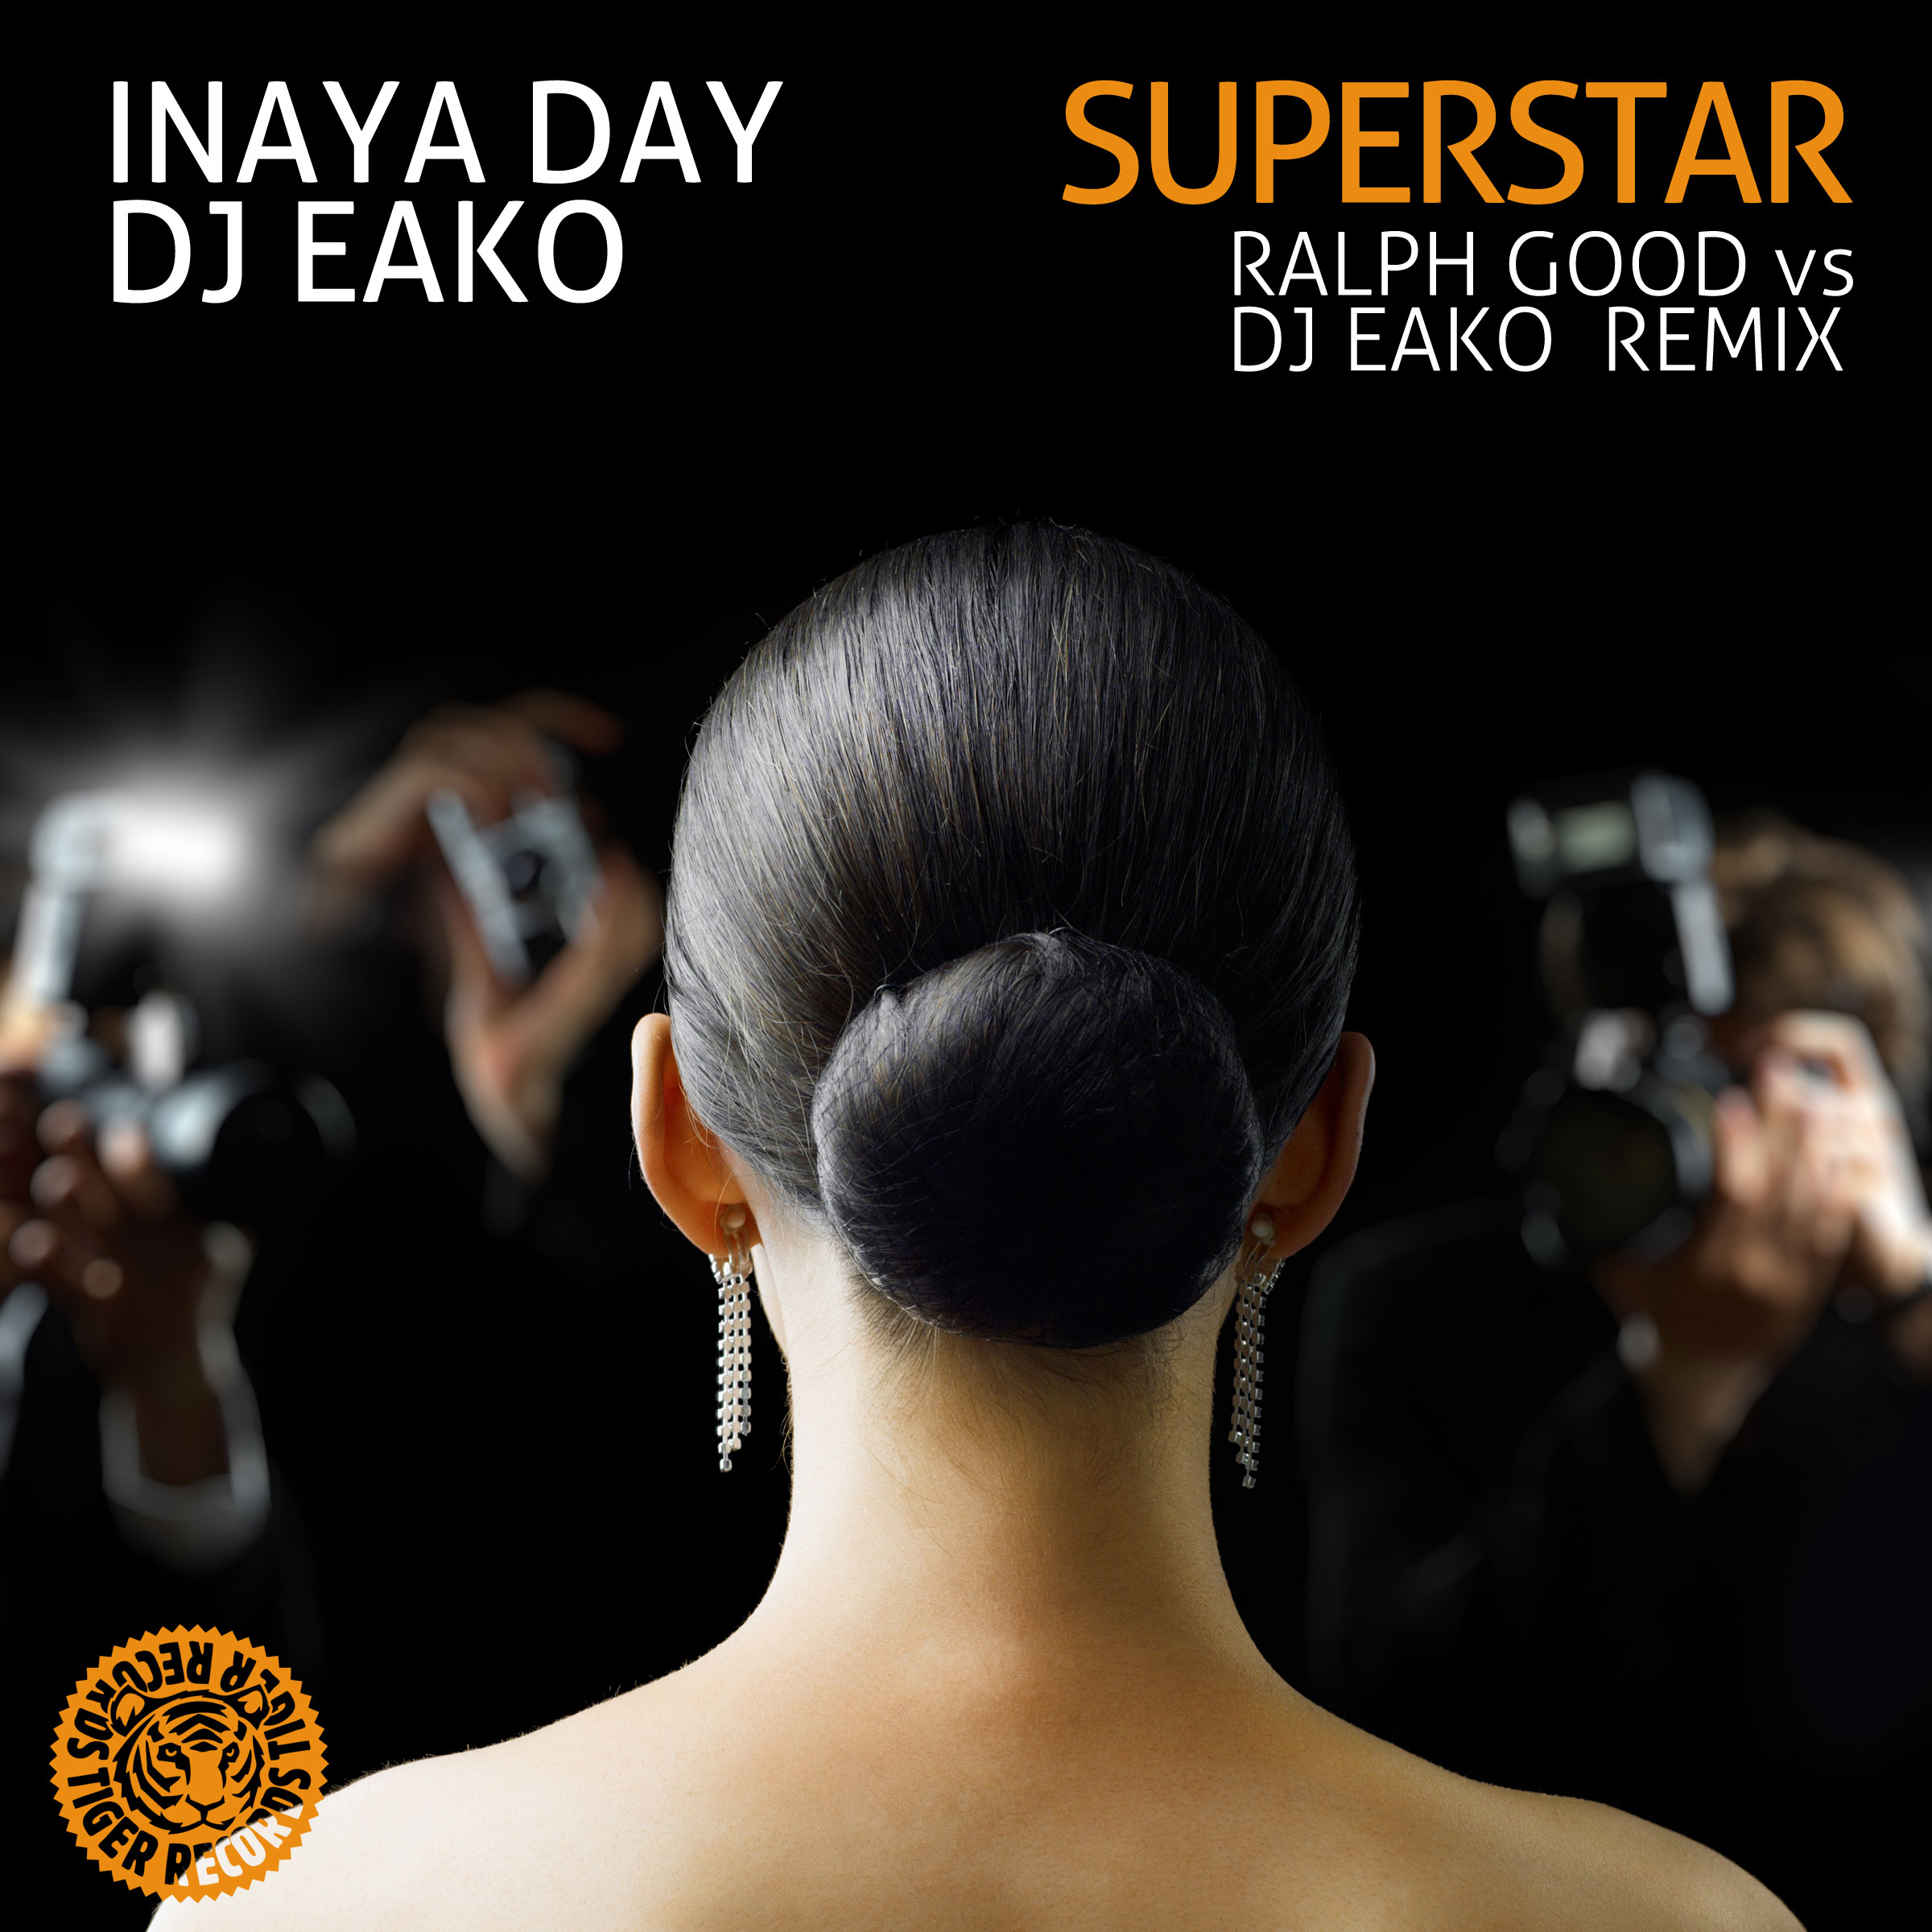 Inaya Day & DJ Eako - Superstar (Ralph Good vs DJ Eako Remix)